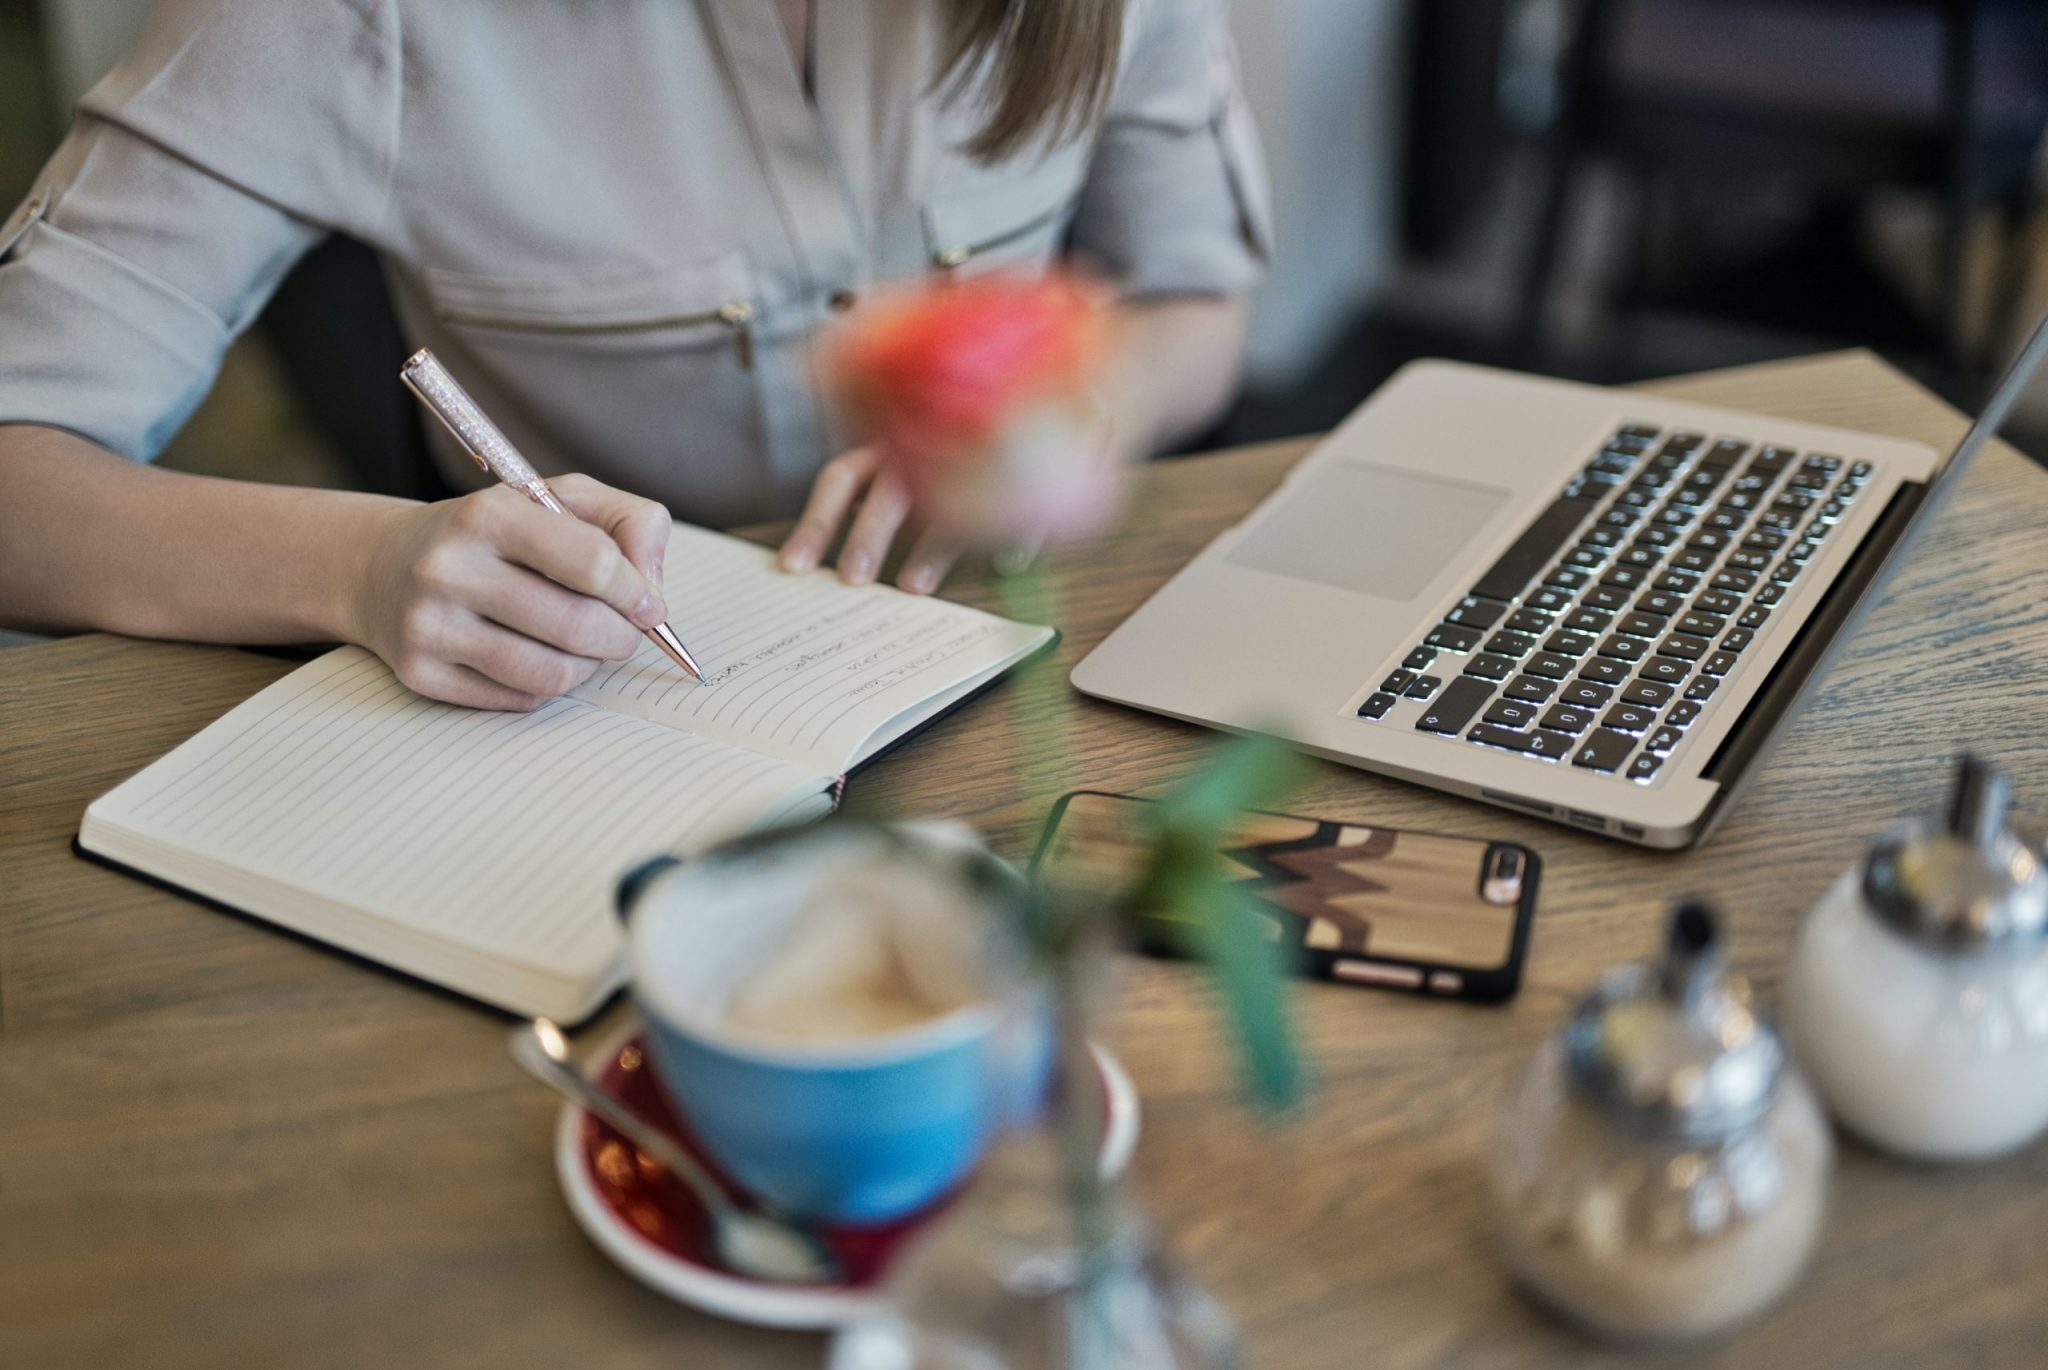 A woman taking notes while working on her laptop